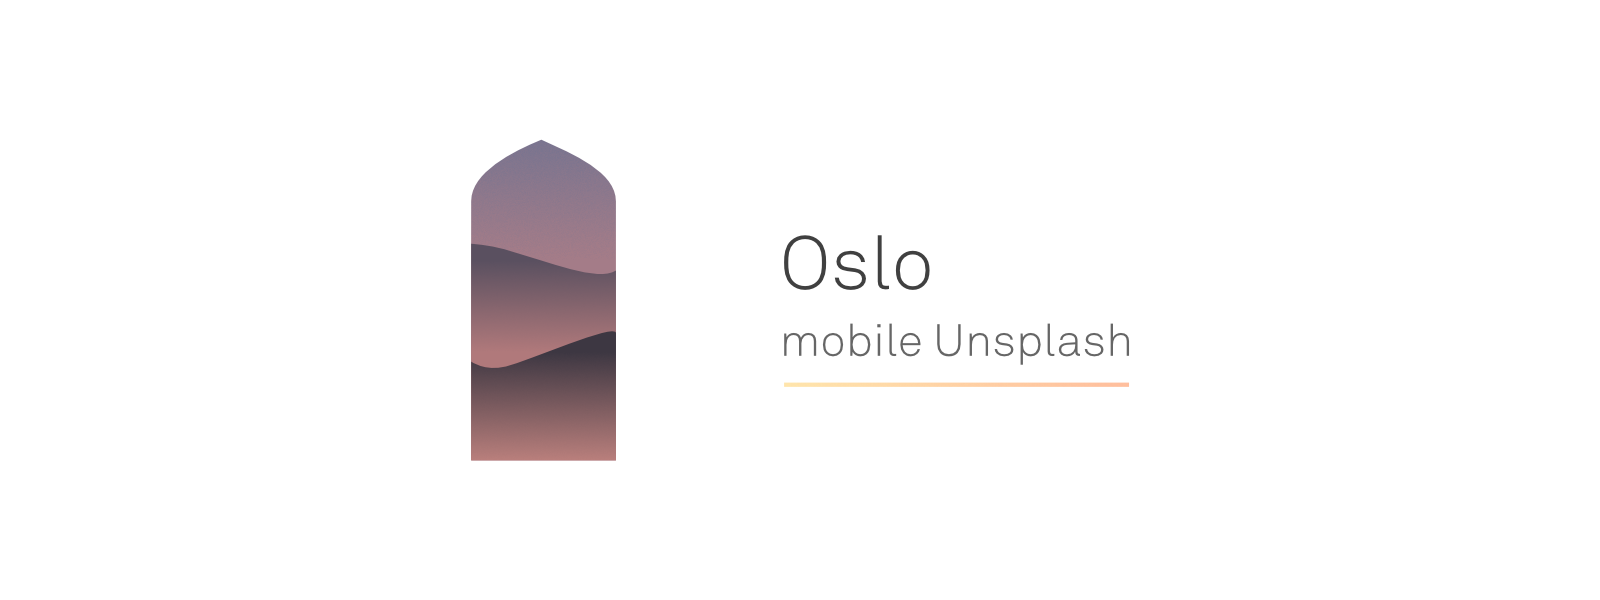 Oslo - Mobile Unsplash